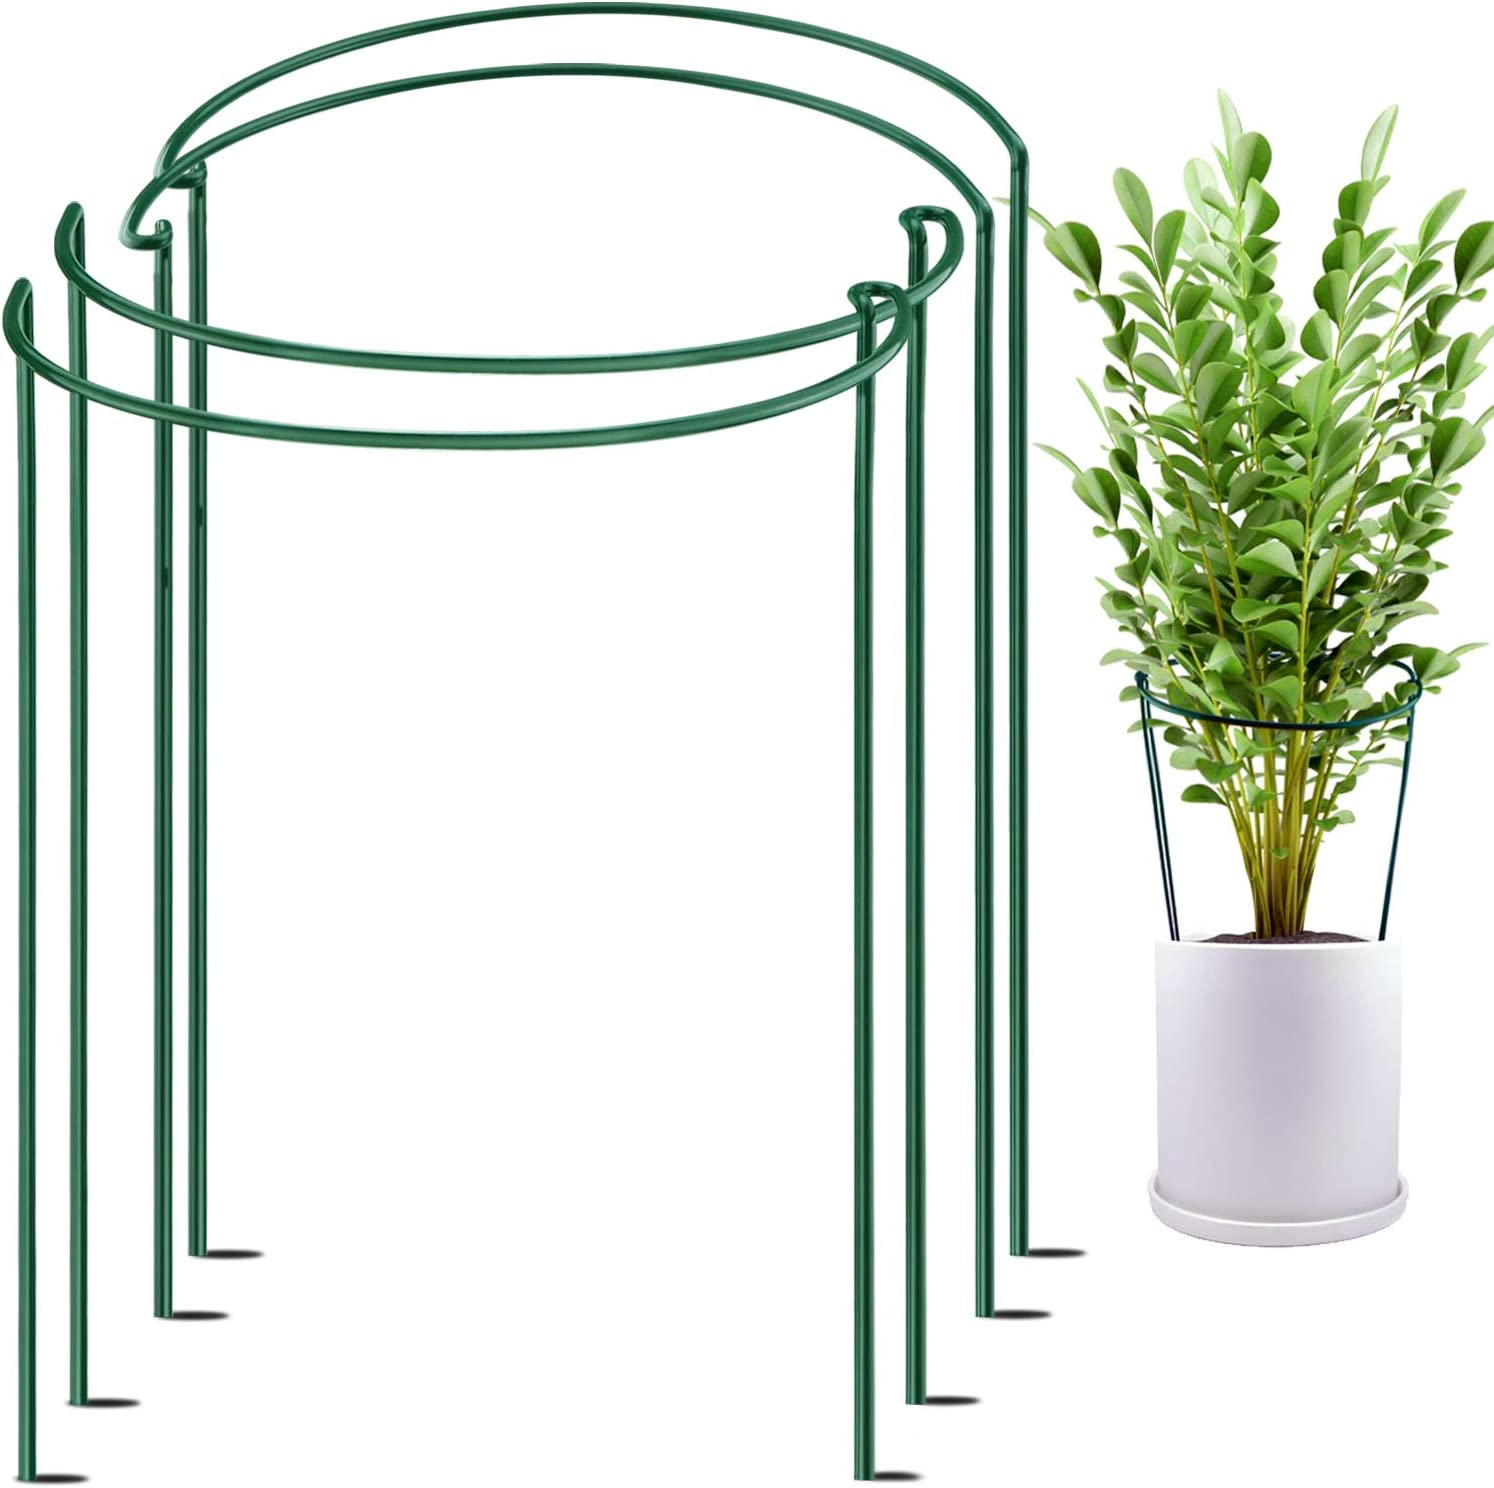 """HiGift 4 Pack Plant Support Stake, Metal Ring Garden Stakes for Plant, Half Circle Plant Supports for Tall Potted Plants Indoor, Plant Support Cage for Peony, Tomato,Hydrangea, (10"""" Wide x 15.8"""" High)"""